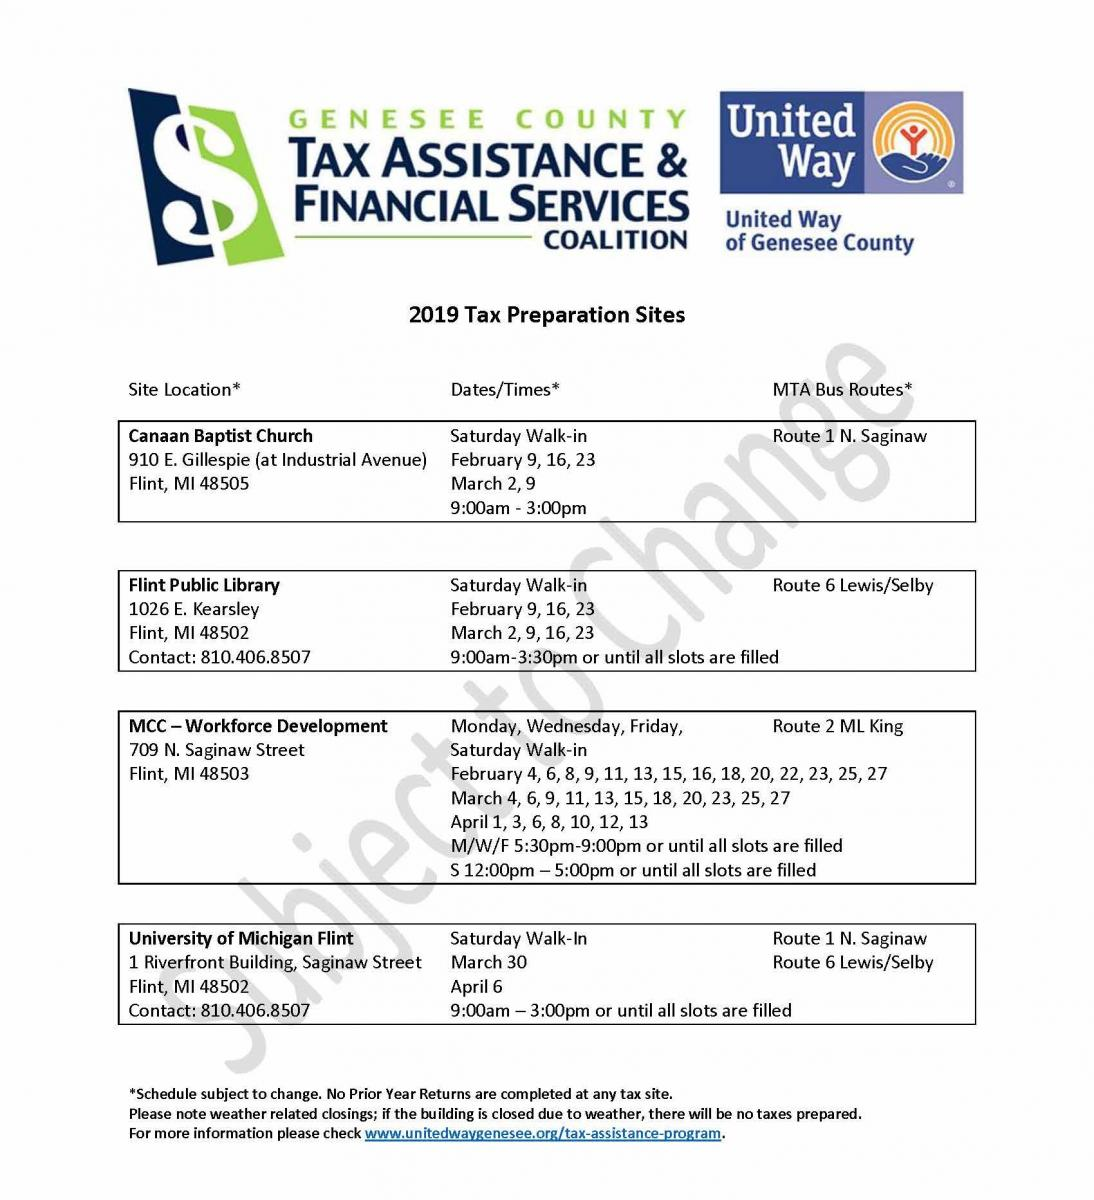 Tax Assistance Program | United Way of Genesee County